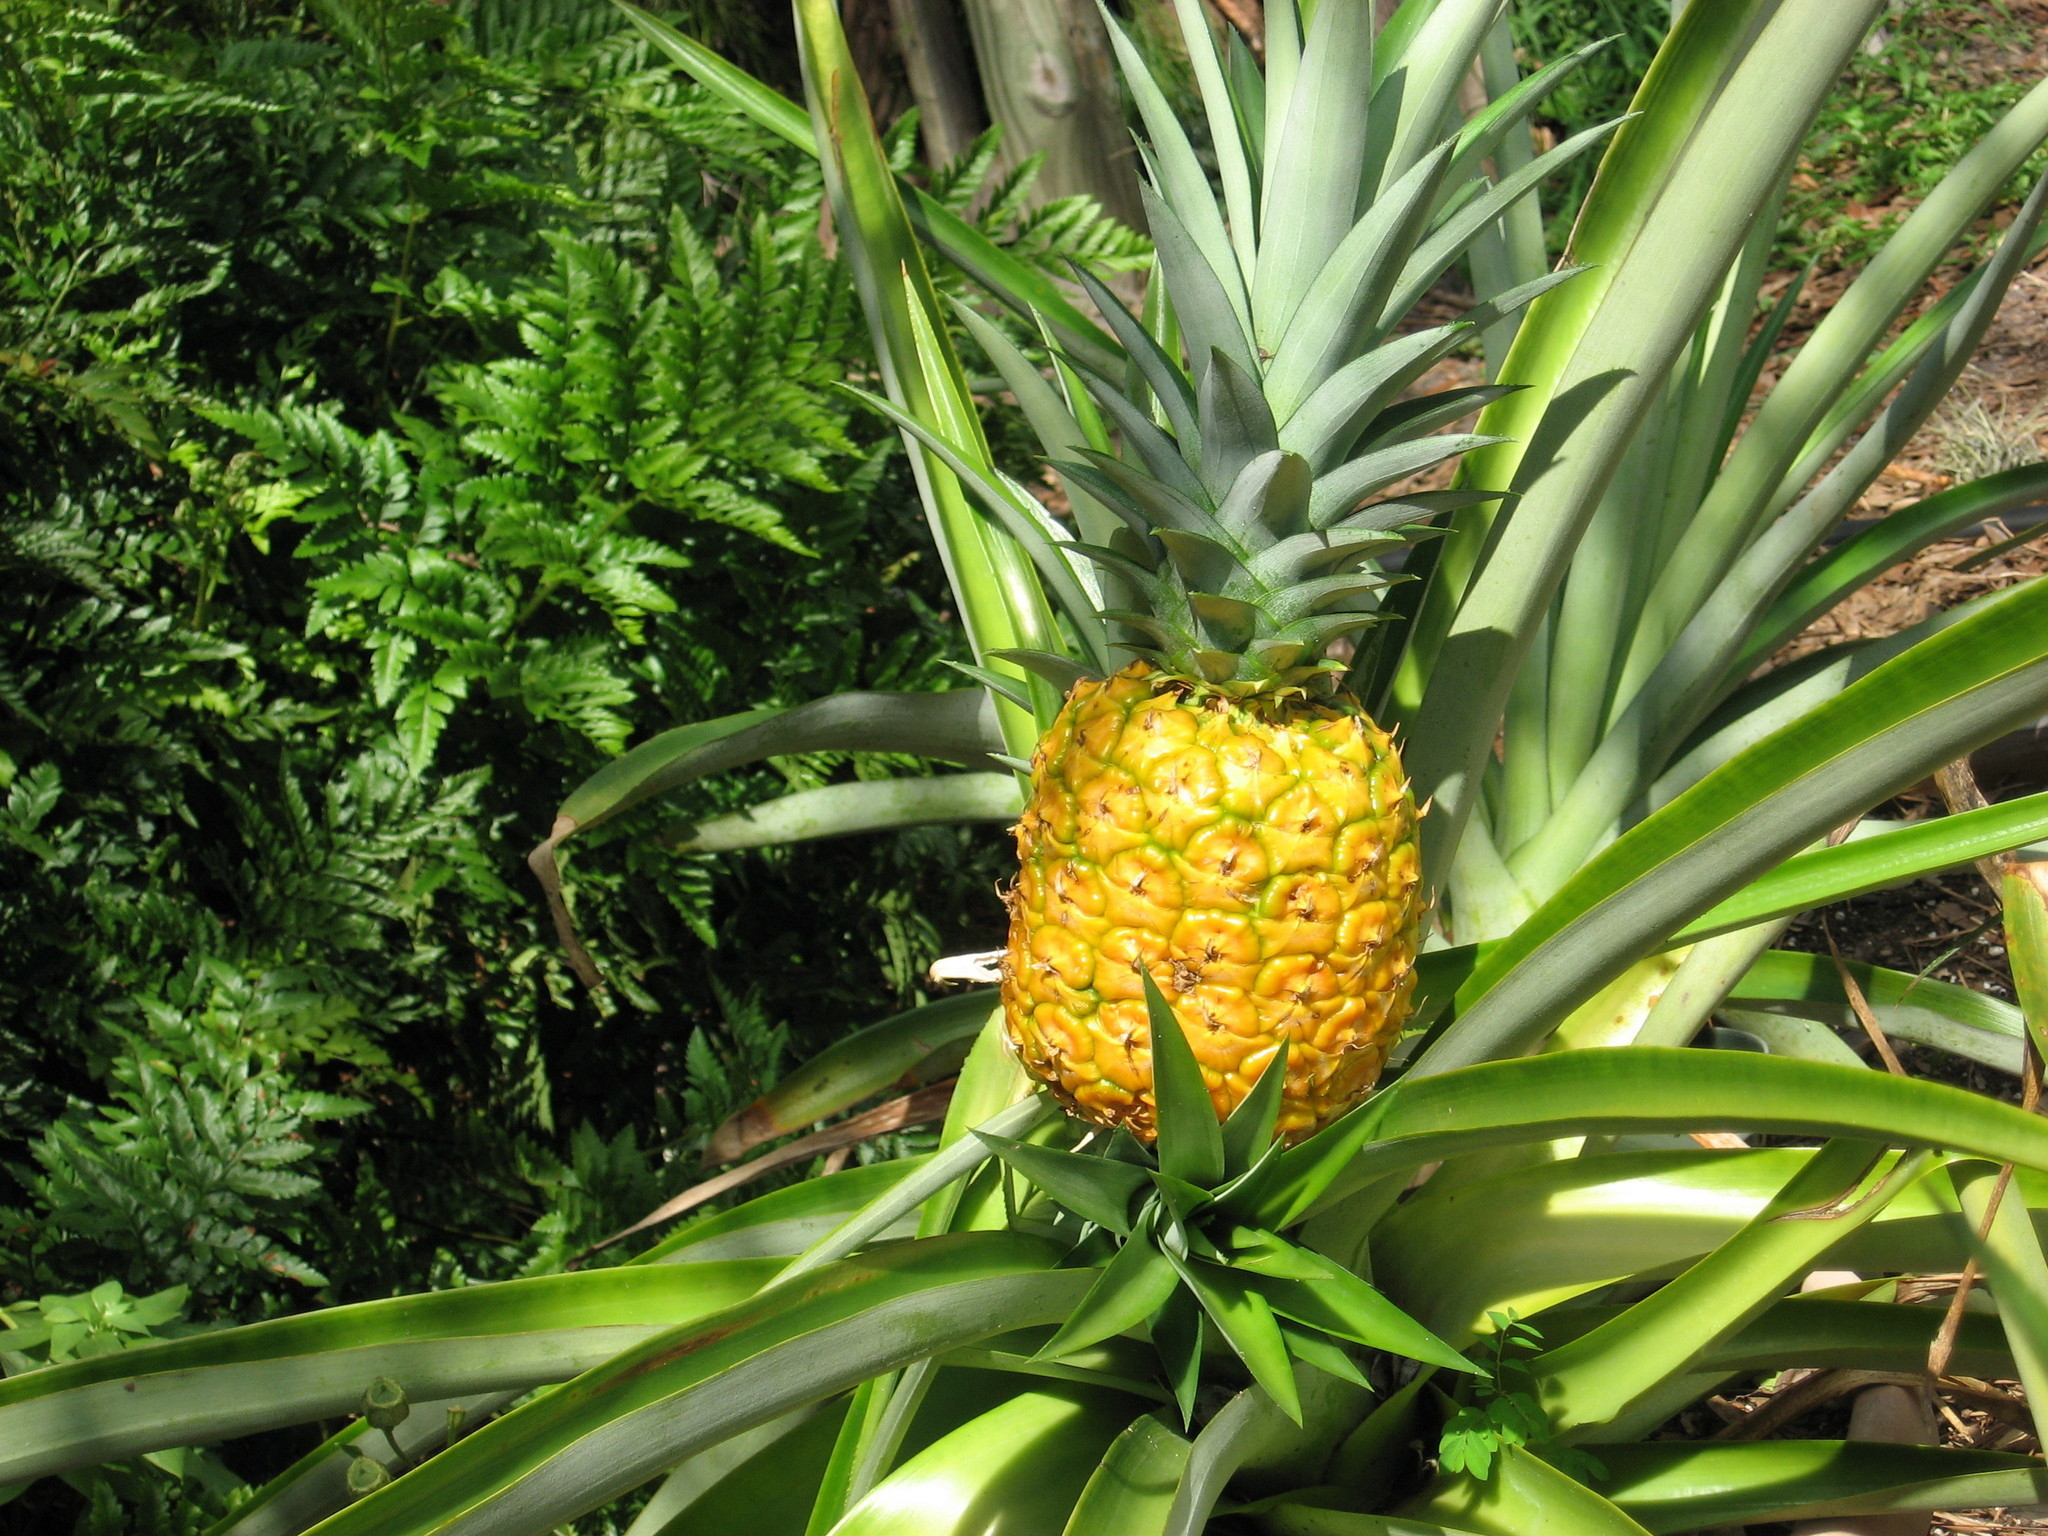 Pineapple time in the garden - Orlando Sentinel